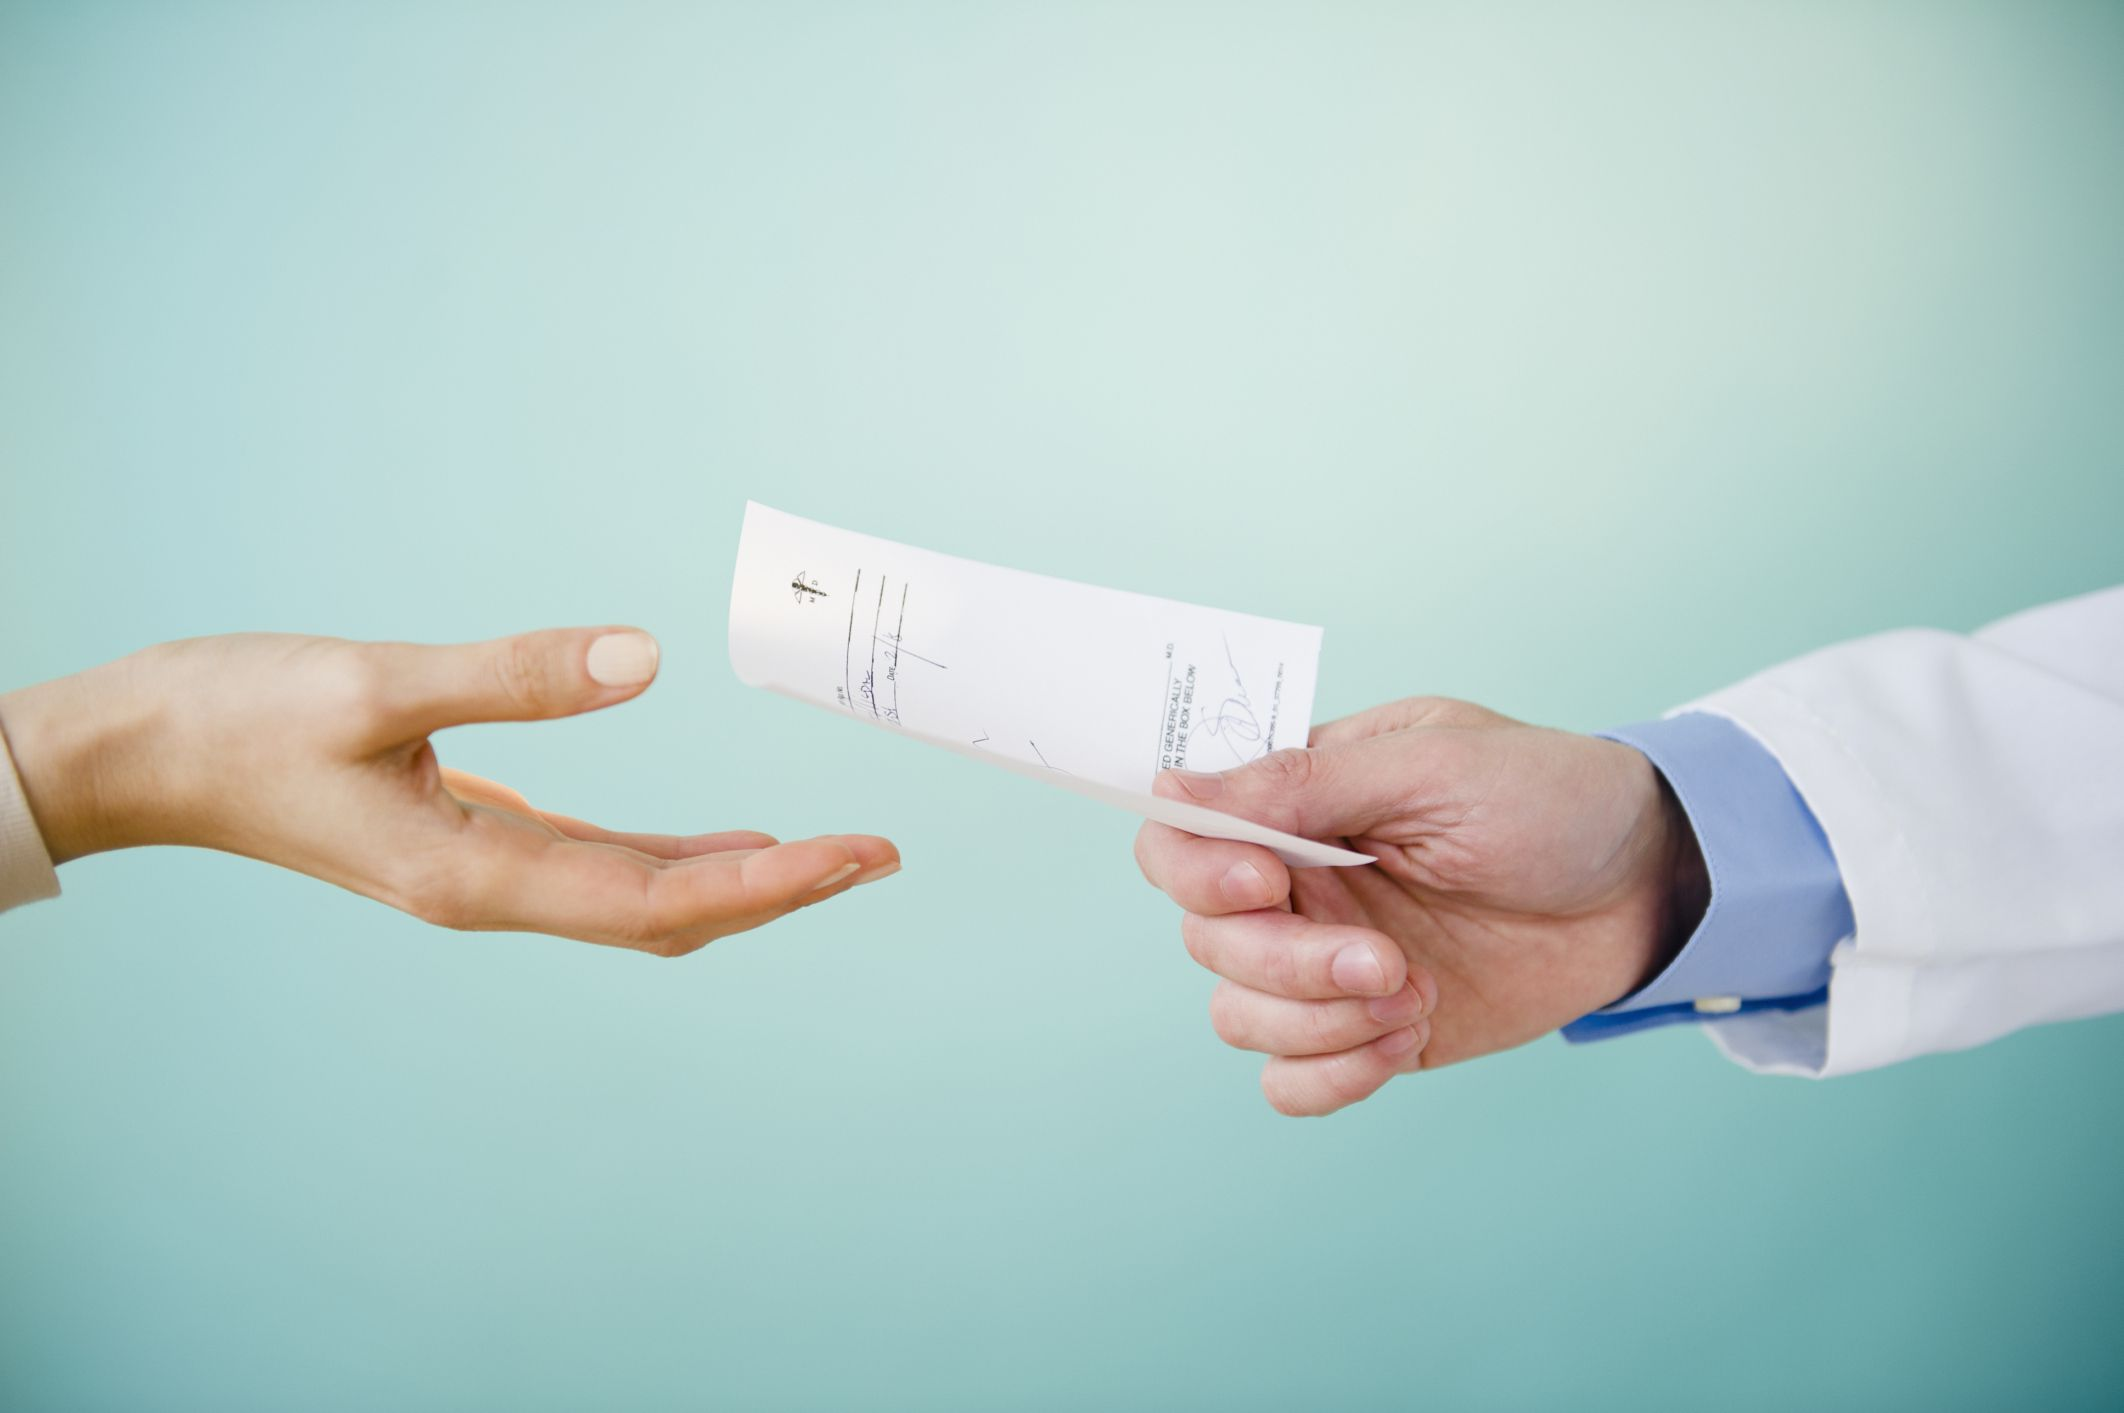 Prescription being handed to a patient by doctor - hands and paper only in shot